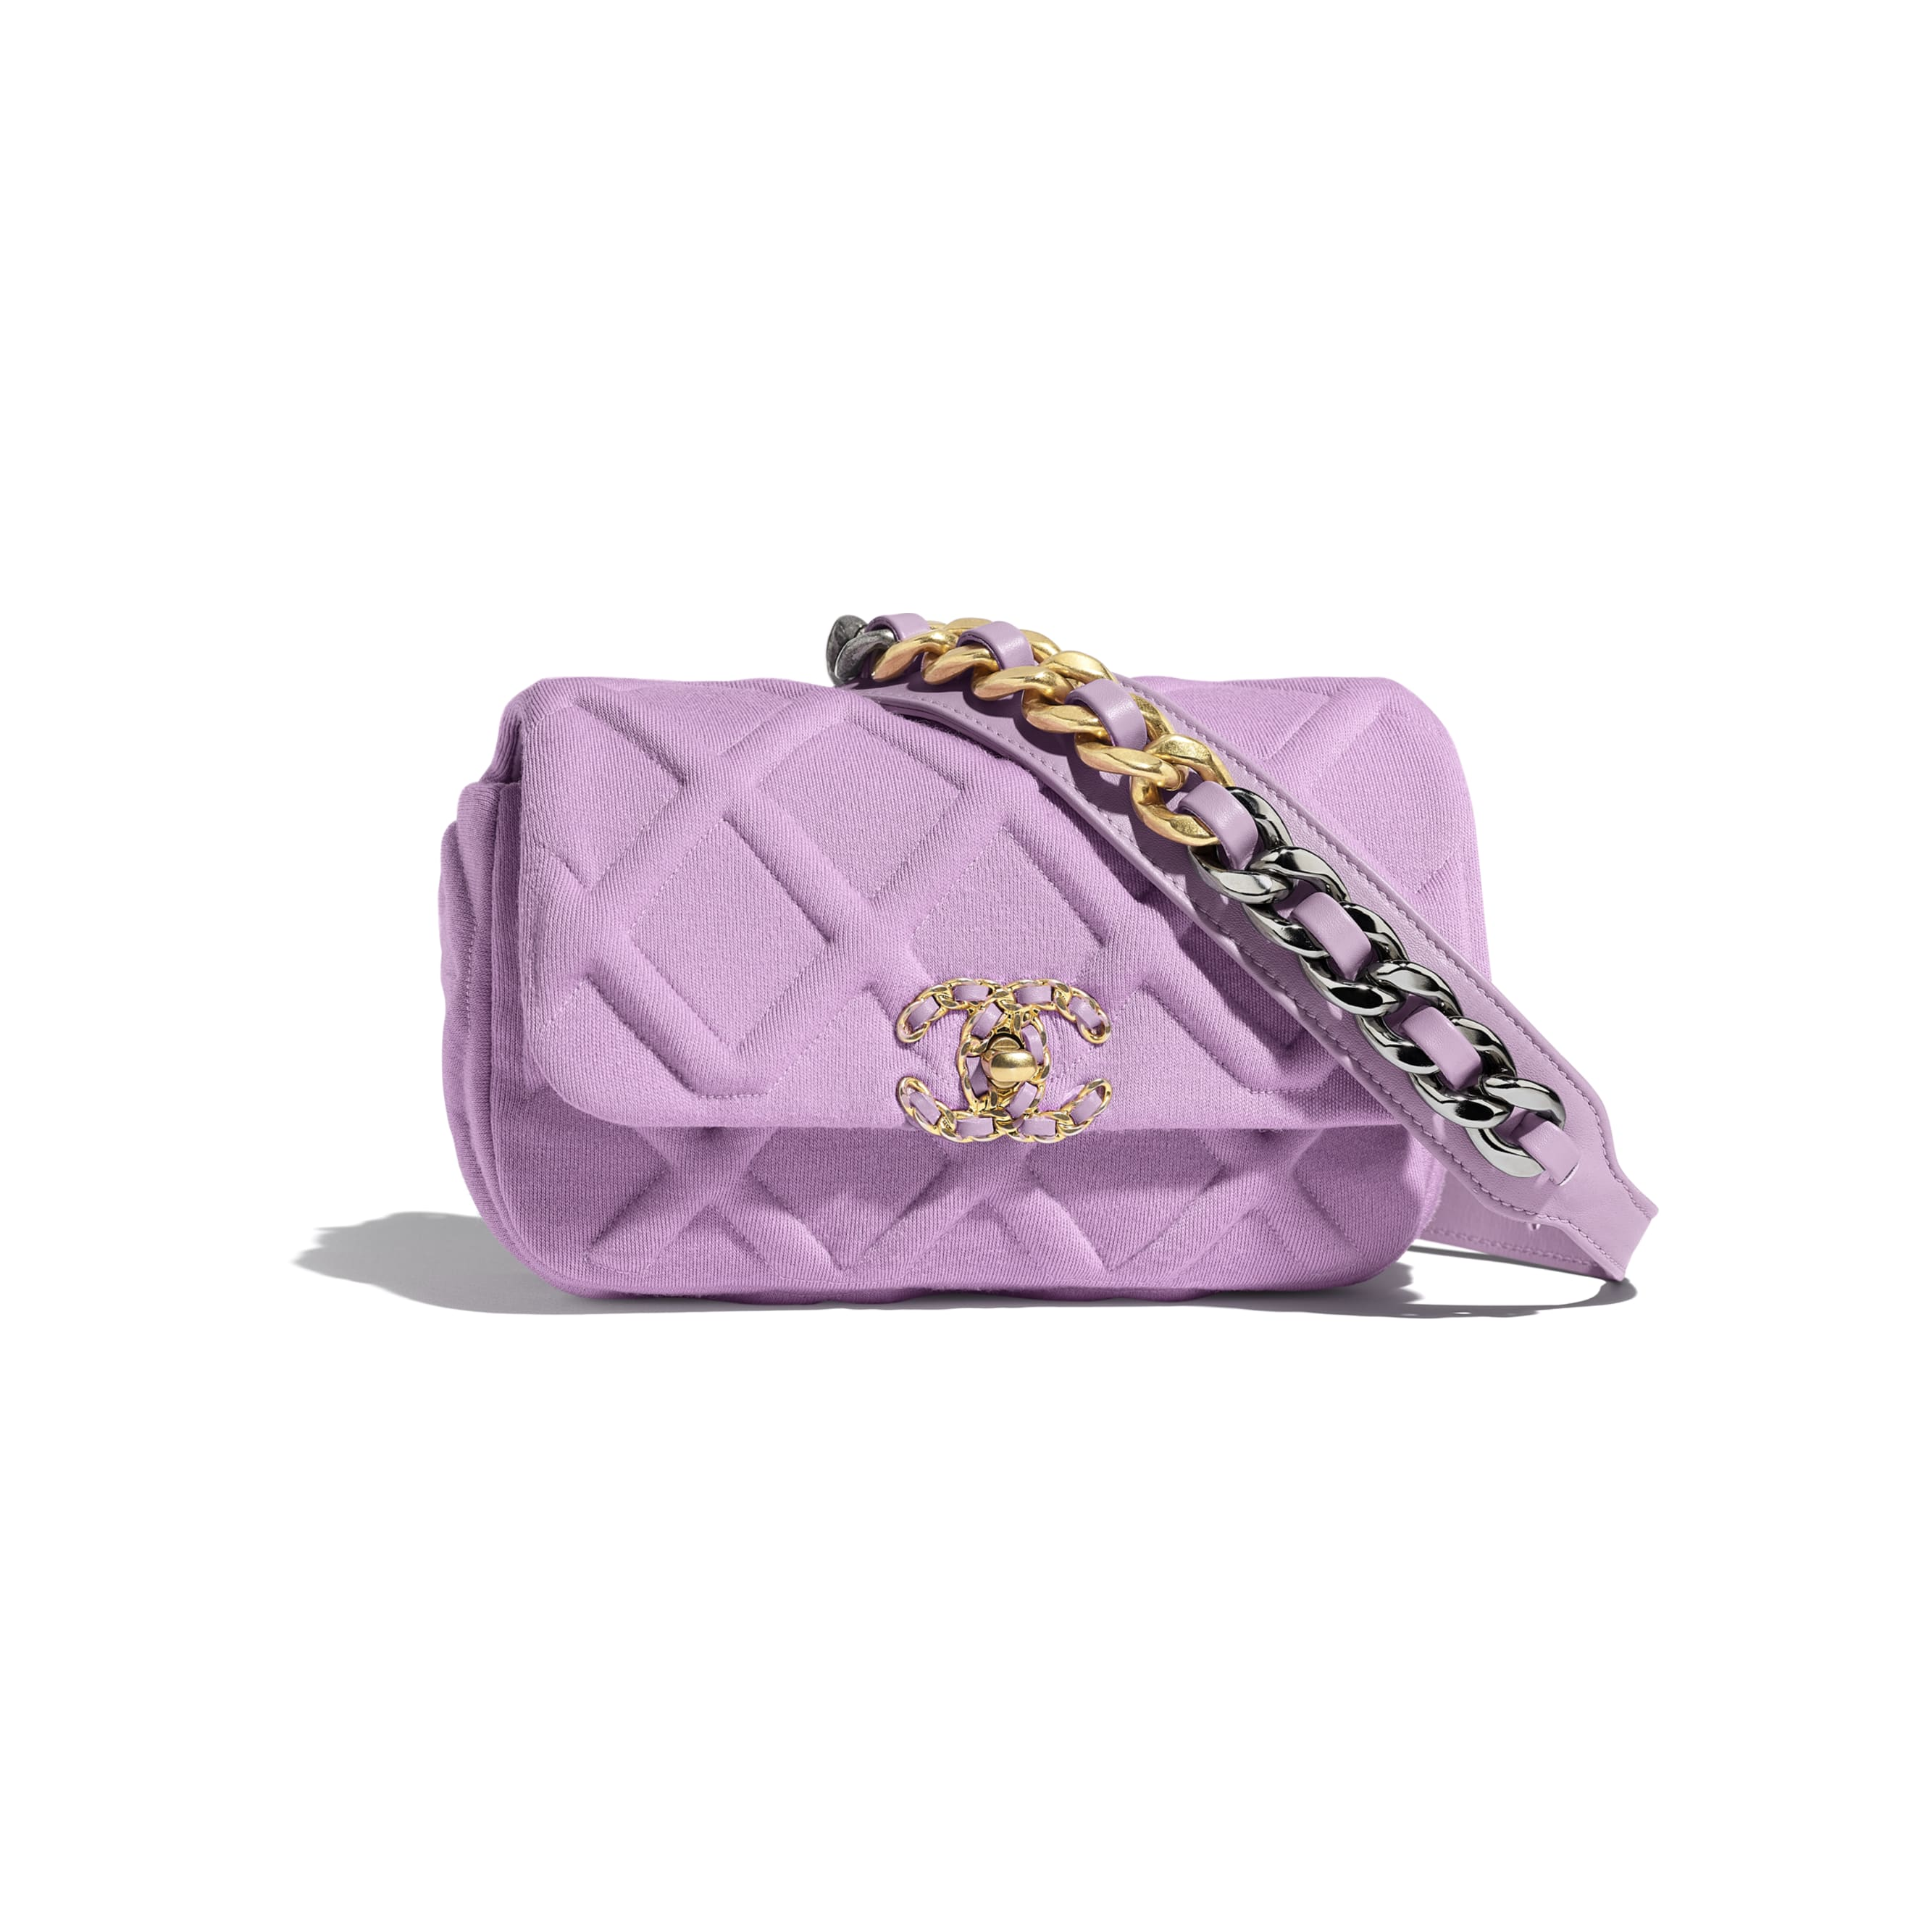 CHANEL 19 Waist Bag - Mauve - Jersey, Gold-Tone, Silver-Tone & Ruthenium-Finish Metal - Default view - see standard sized version